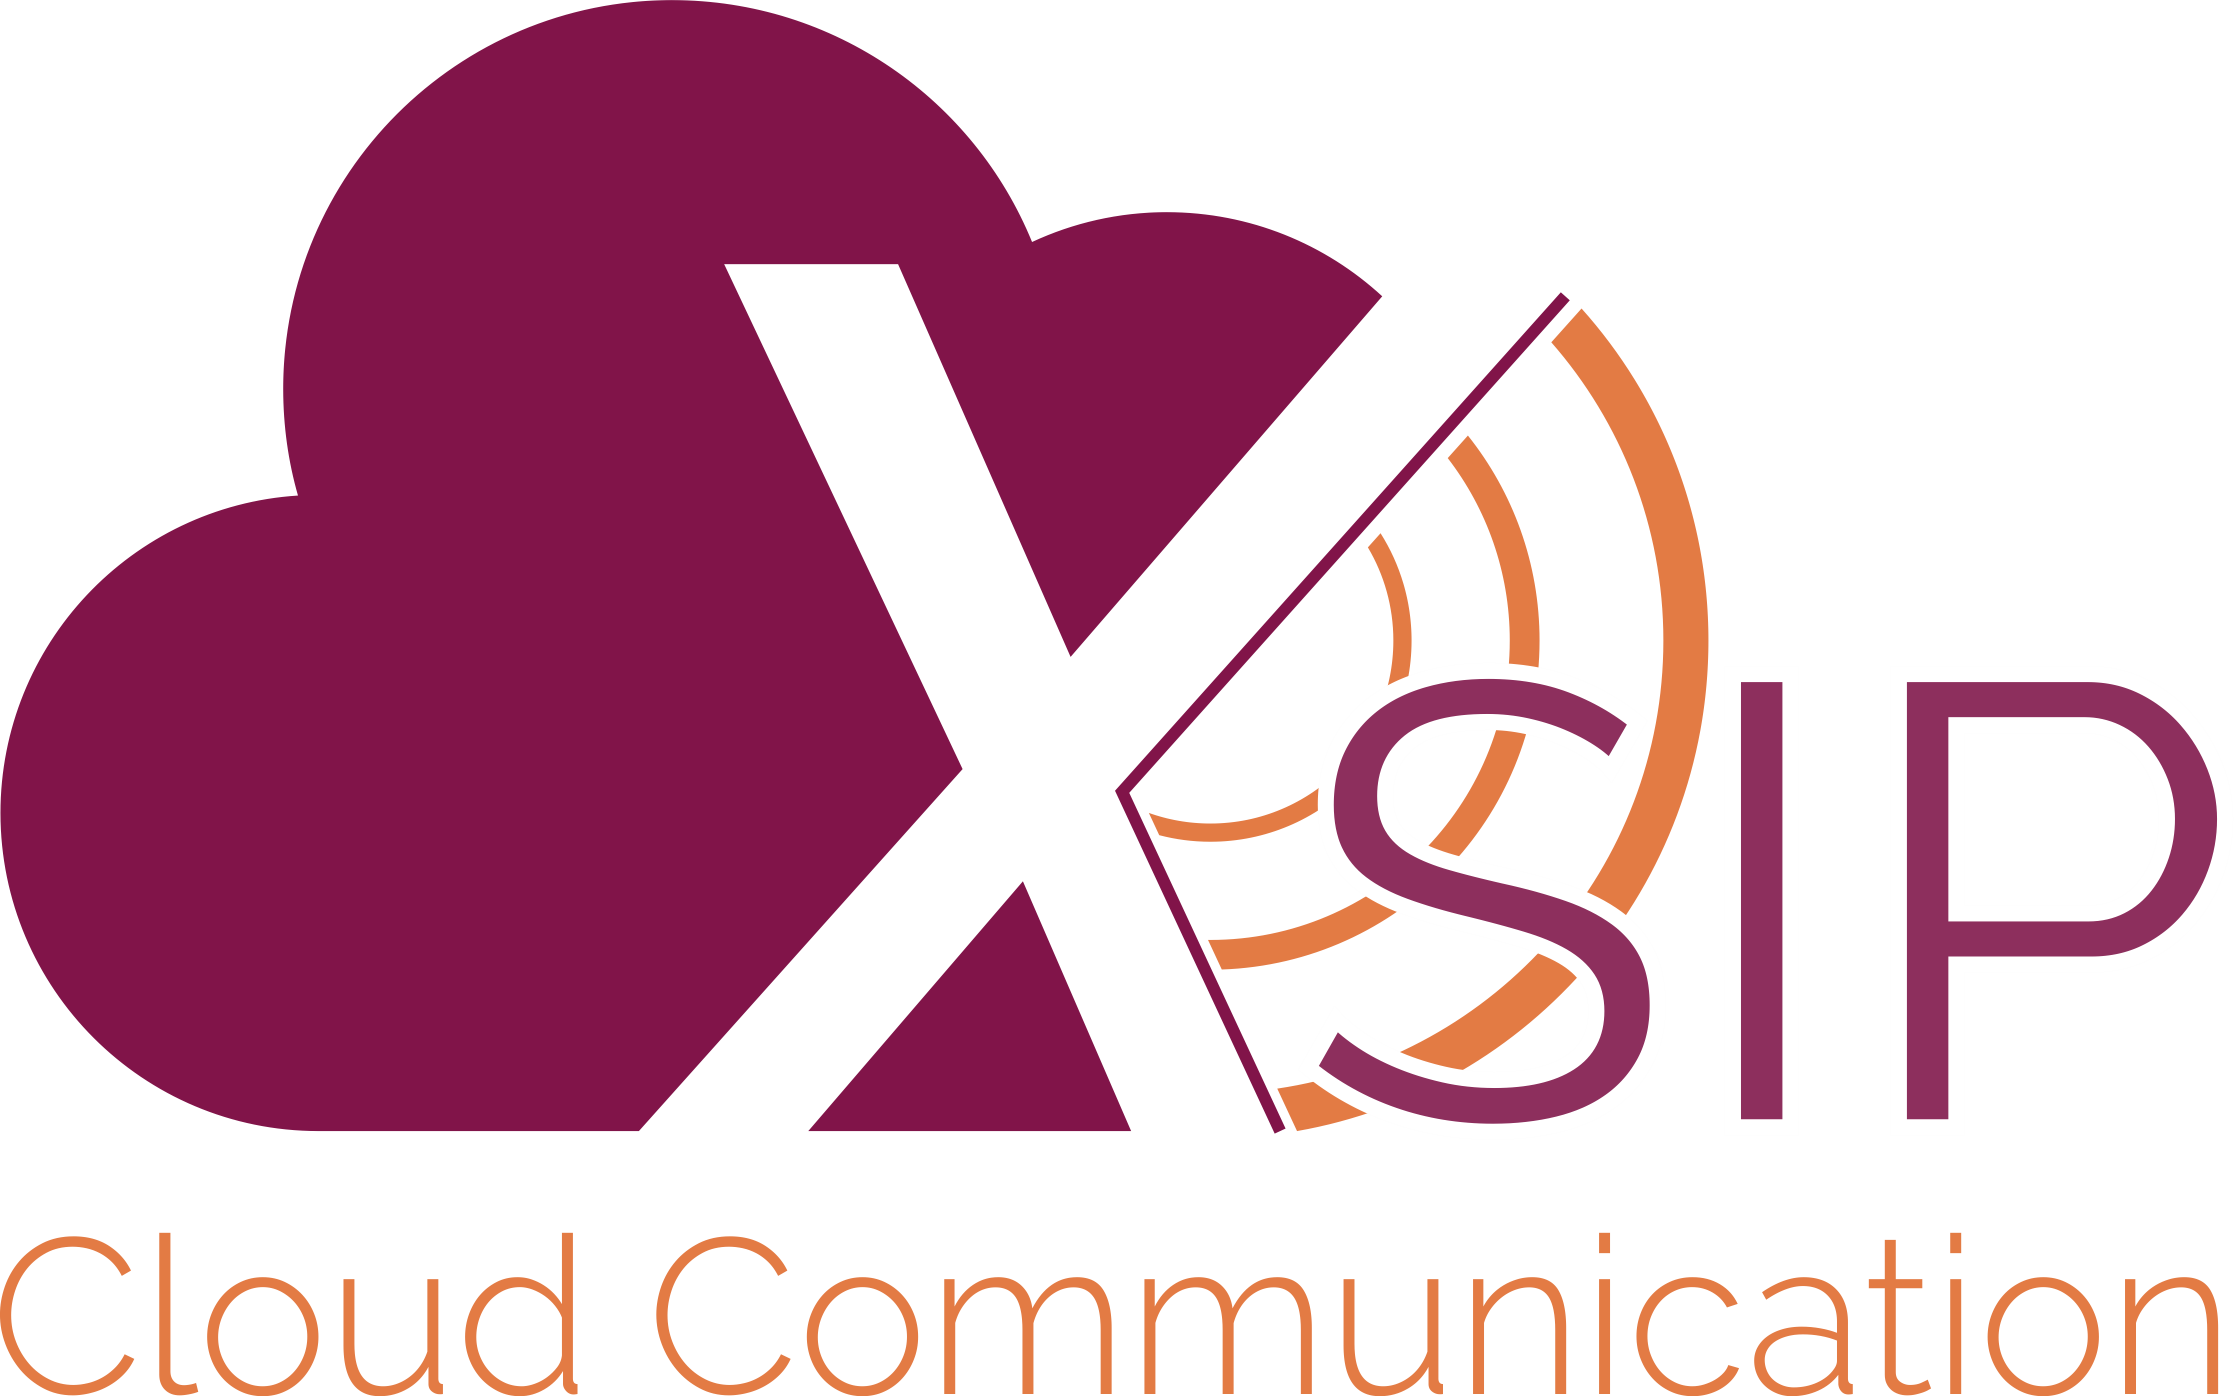 XSIP | Cloud Communication